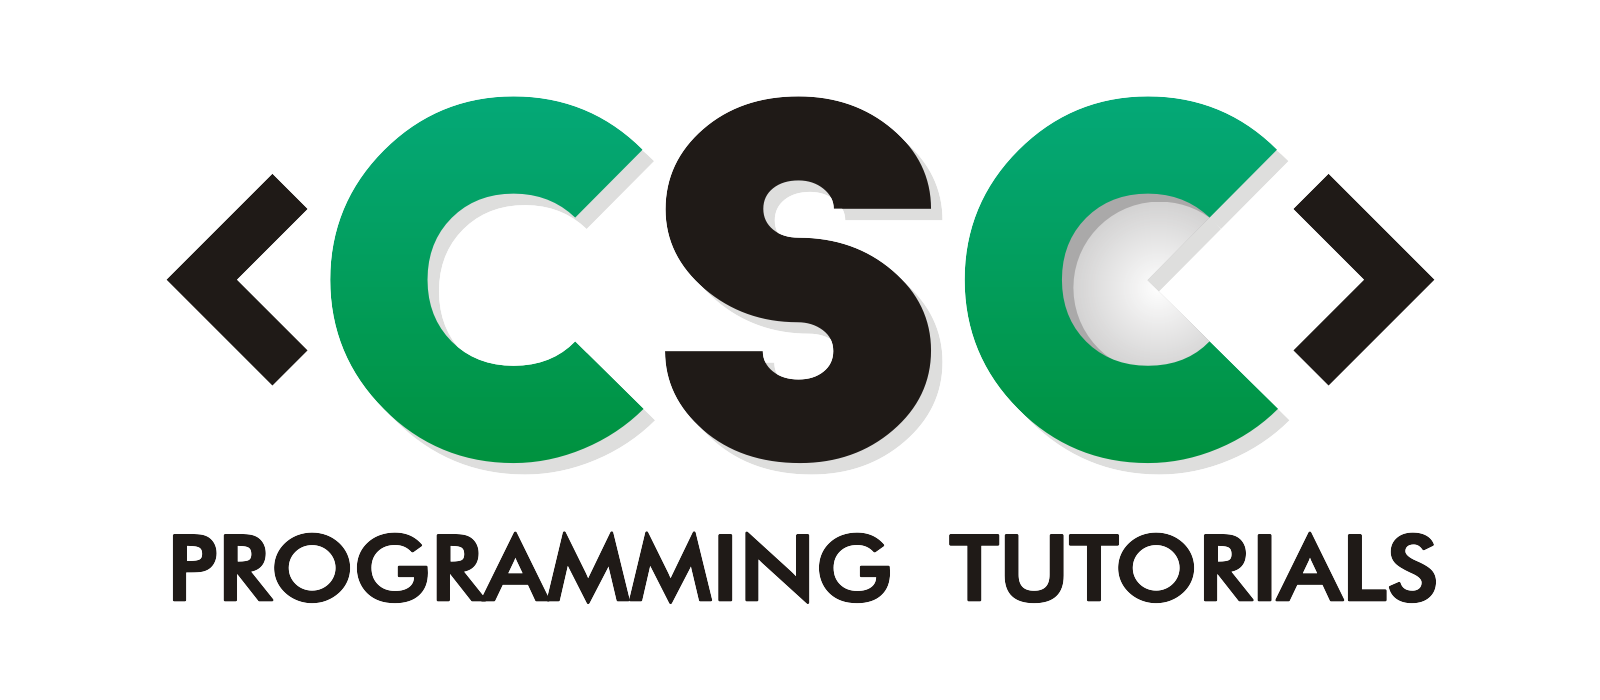 Computer Science Programming Tutorials Logo